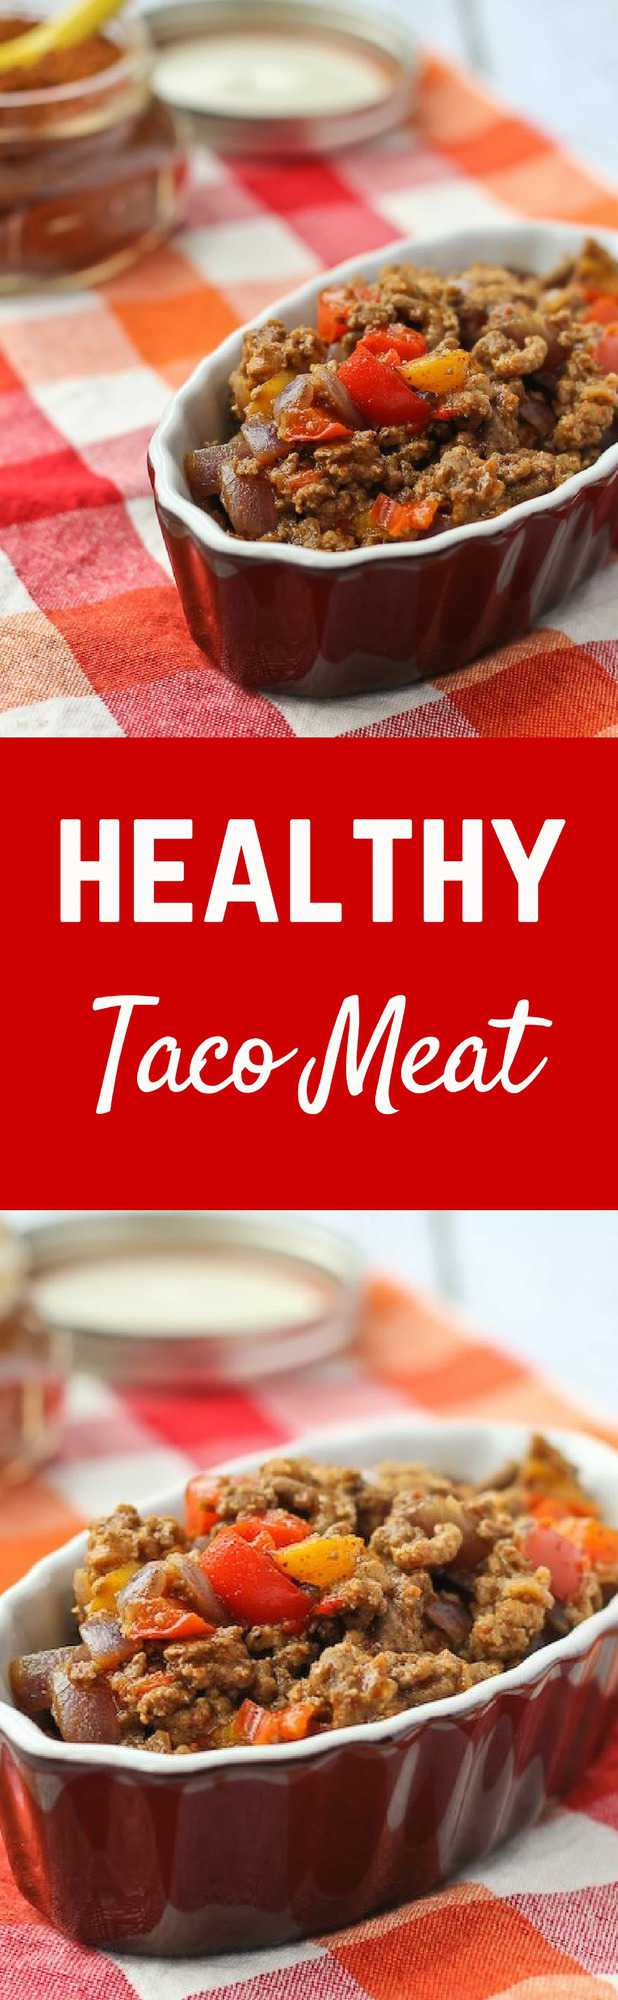 This healthytaco meat is something I could make with my eyes closed. Some vegetable additions make this budget AND waist-friendly! Get the recipe on RachelCooks.com!